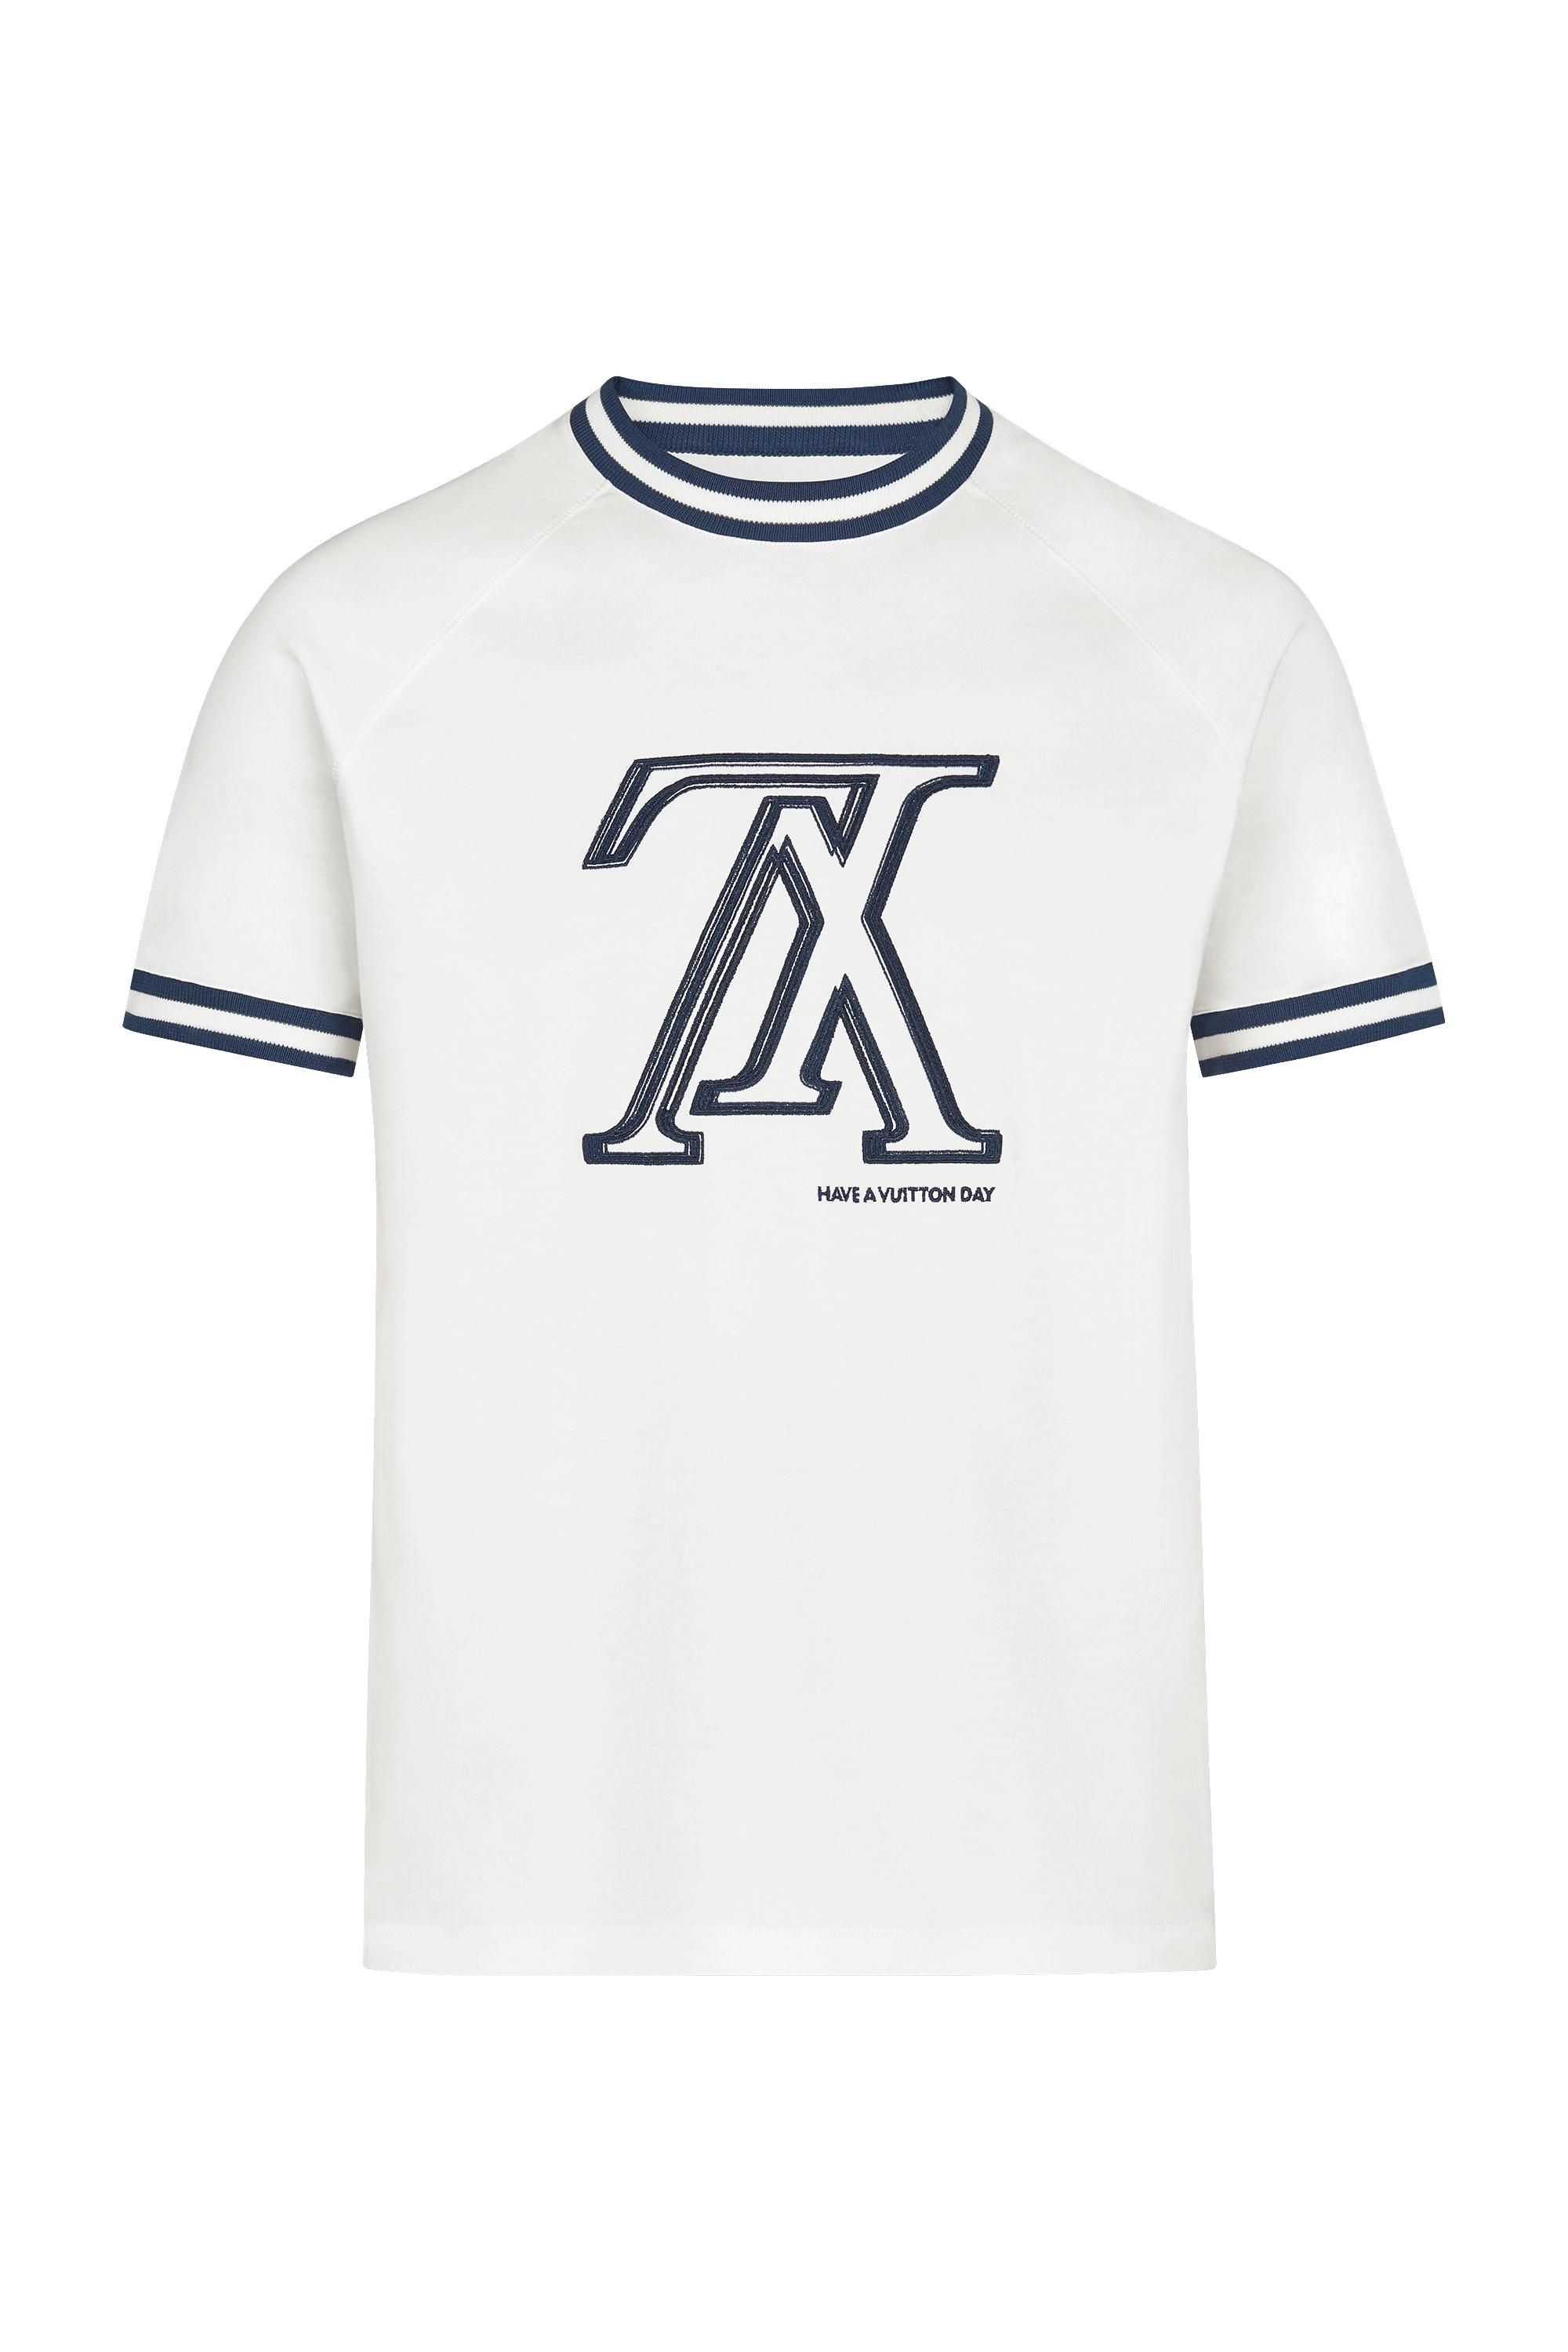 a7837facea UPSIDE DOWN LV TSHIRT WITH TIPPING in Men's Ready to Wear T-shirts ...